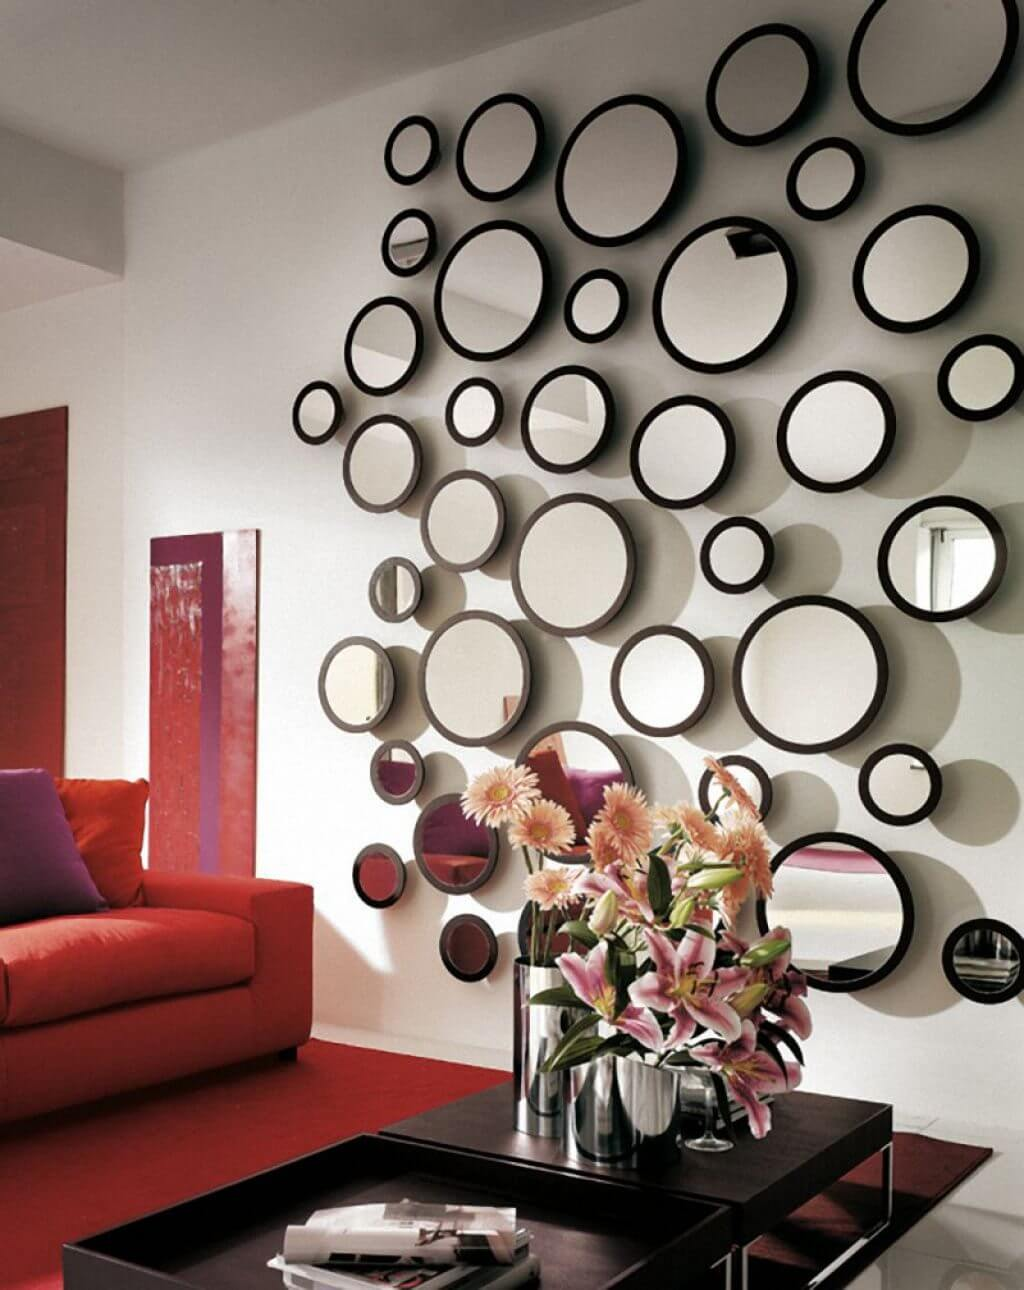 Playful Accent Wall of Round Mirrors